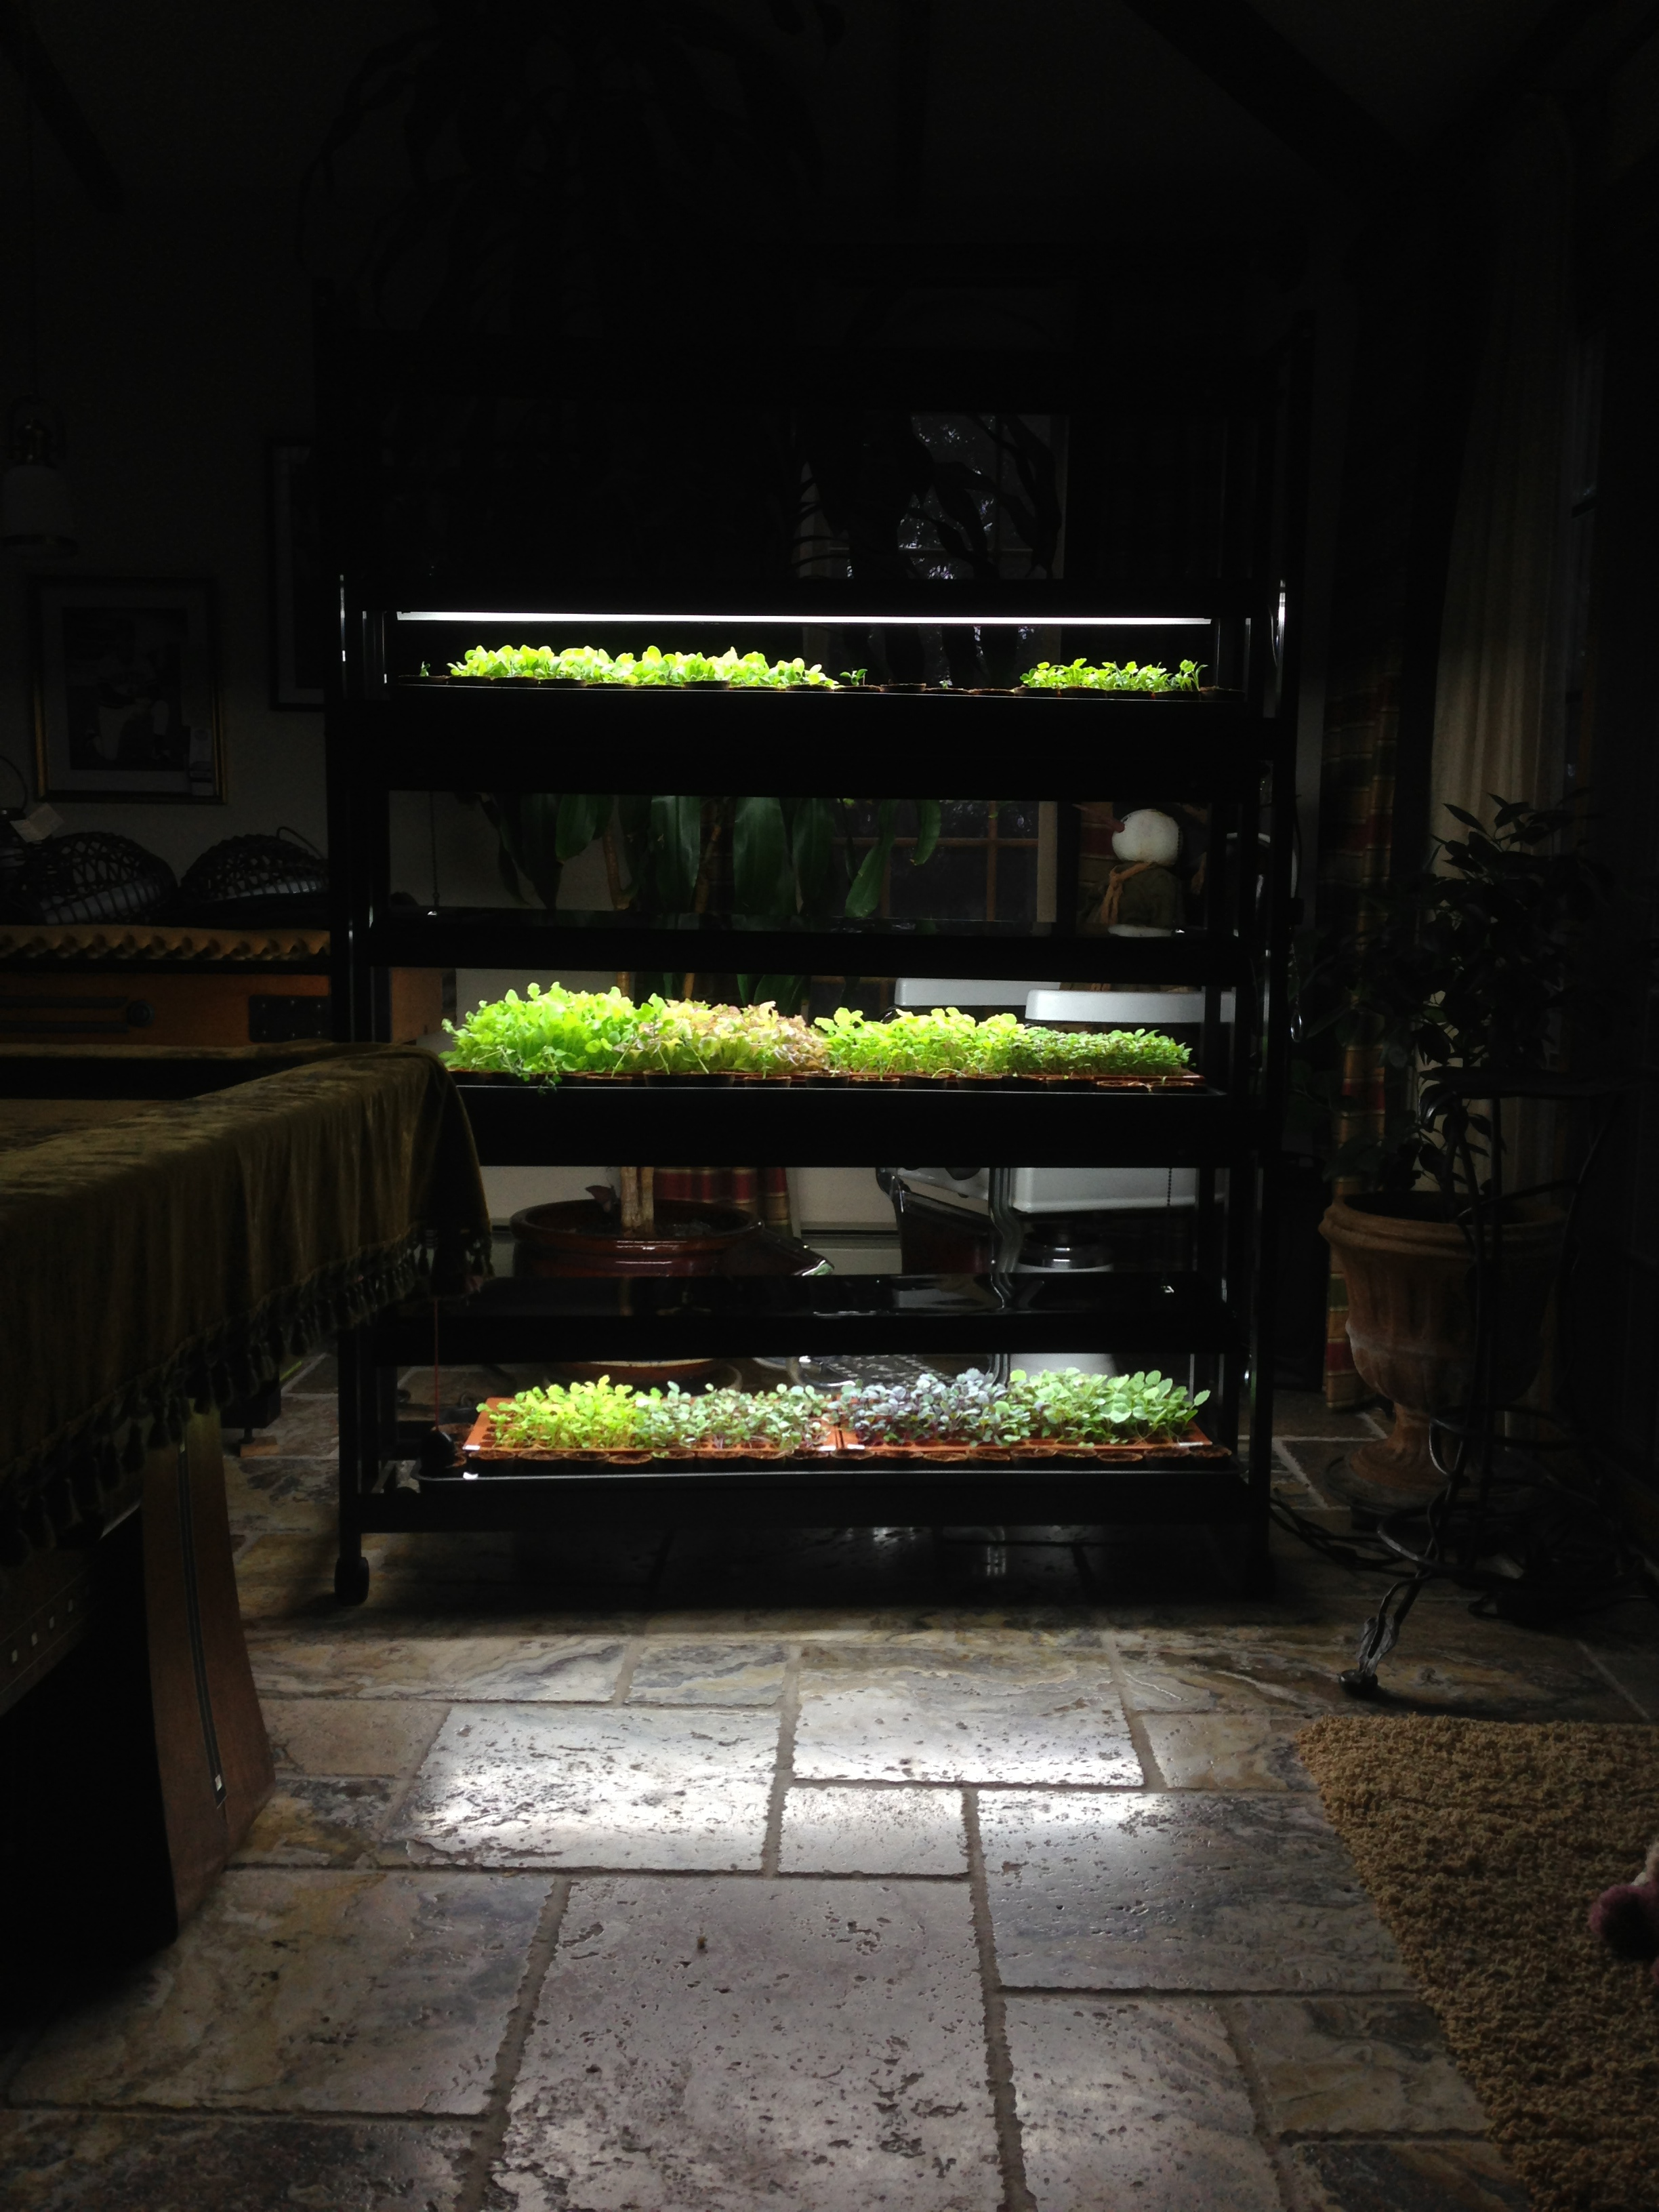 Our indoor seedling station. We have a bunch of lettuces, turnips, beets and more waiting to get planted in the next week!